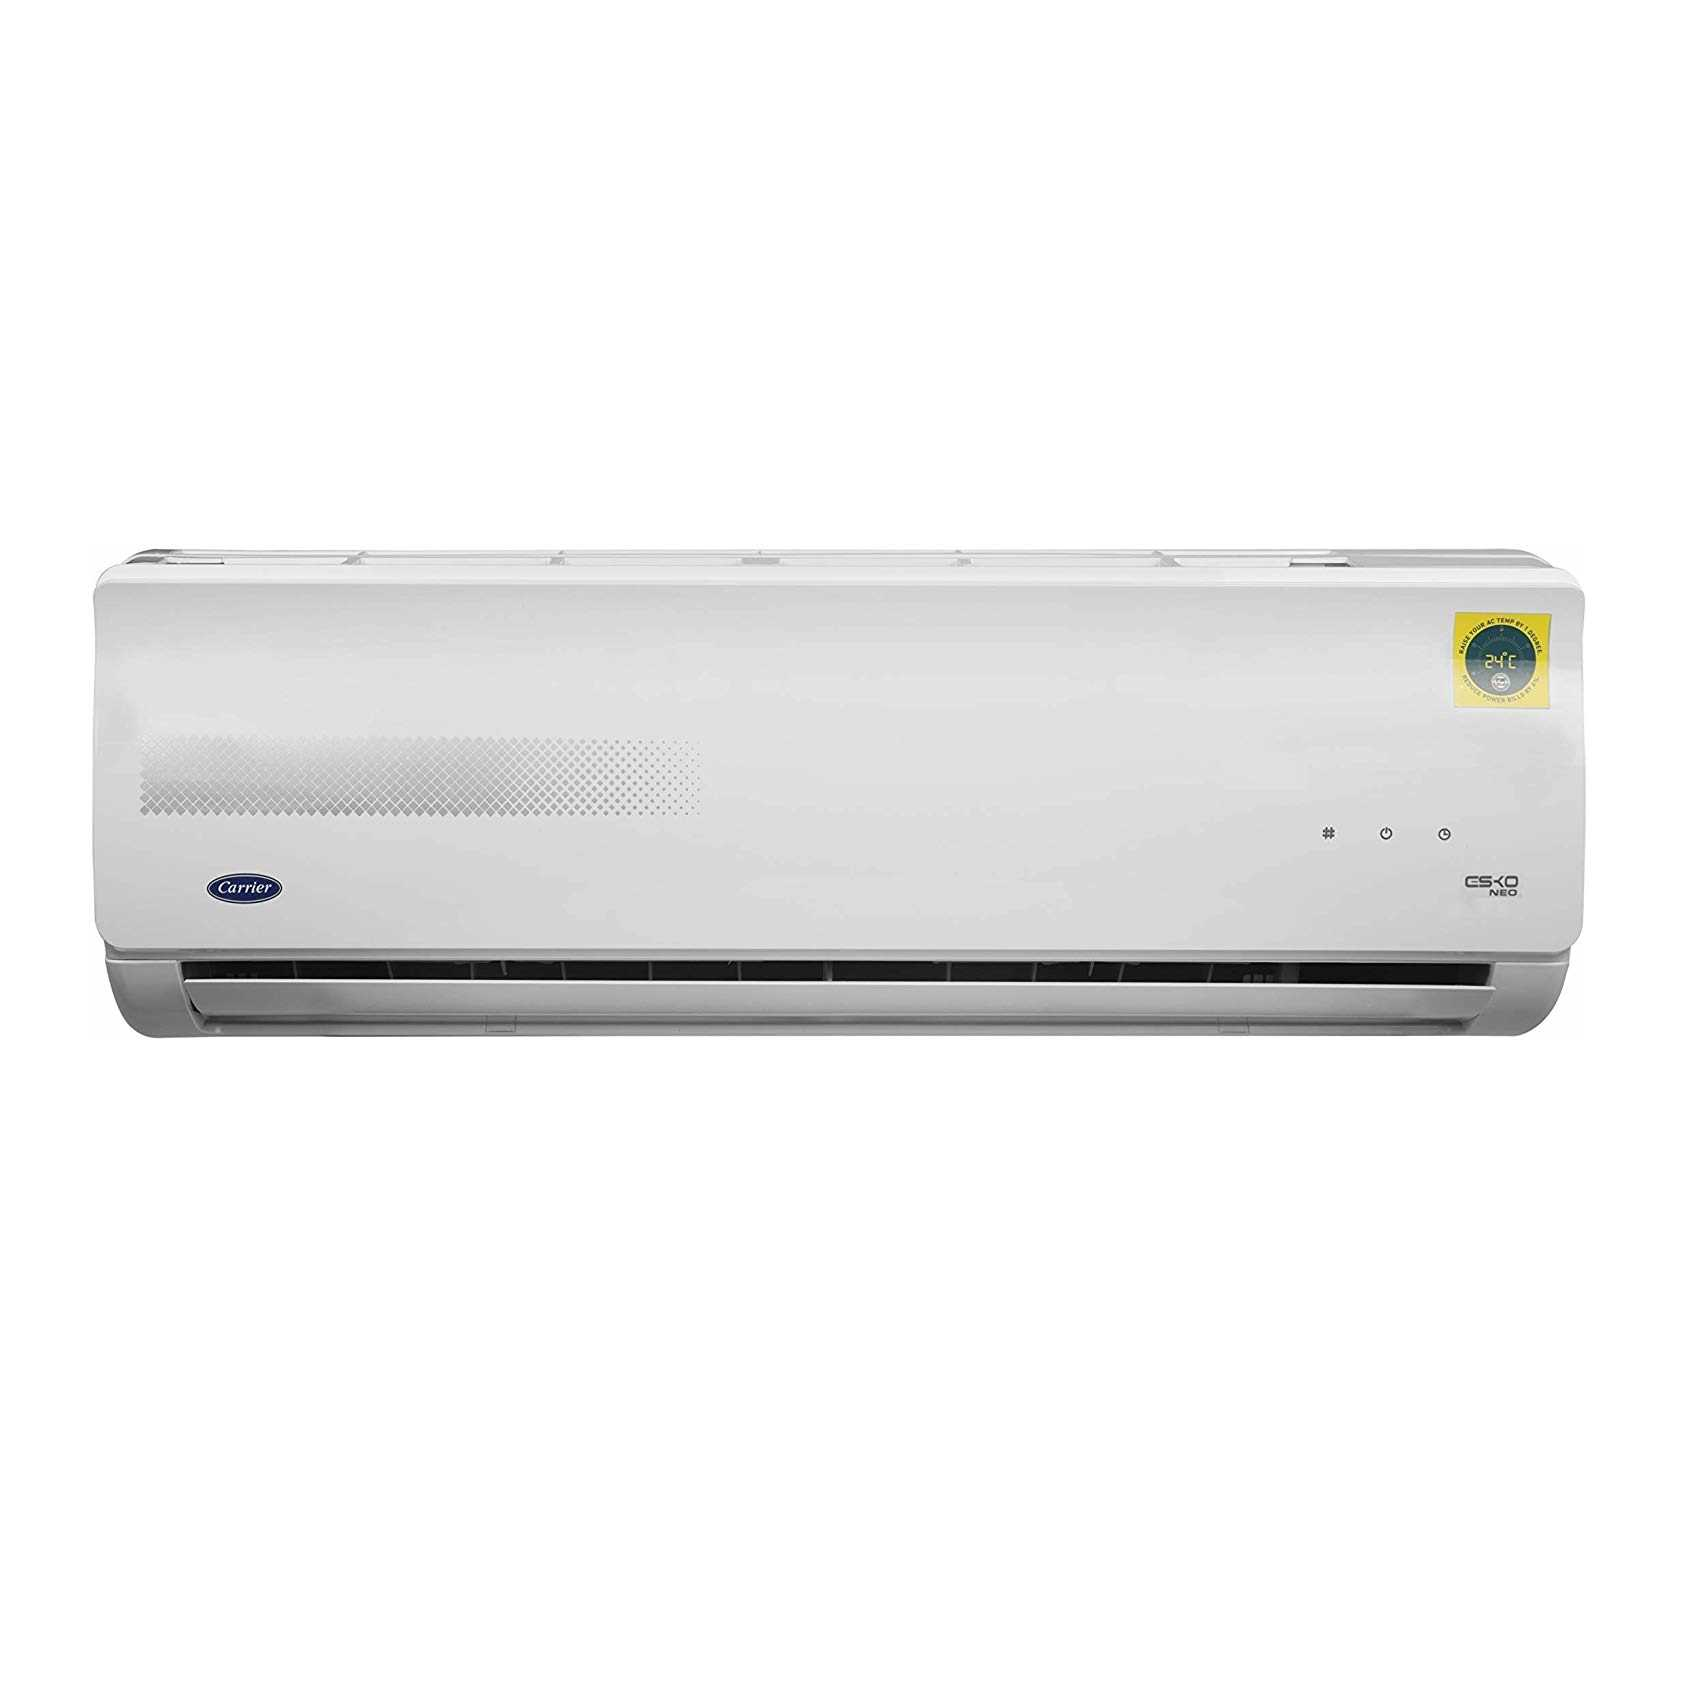 Carrier 12K Esko Neo 1 Ton 3 Star Split AC